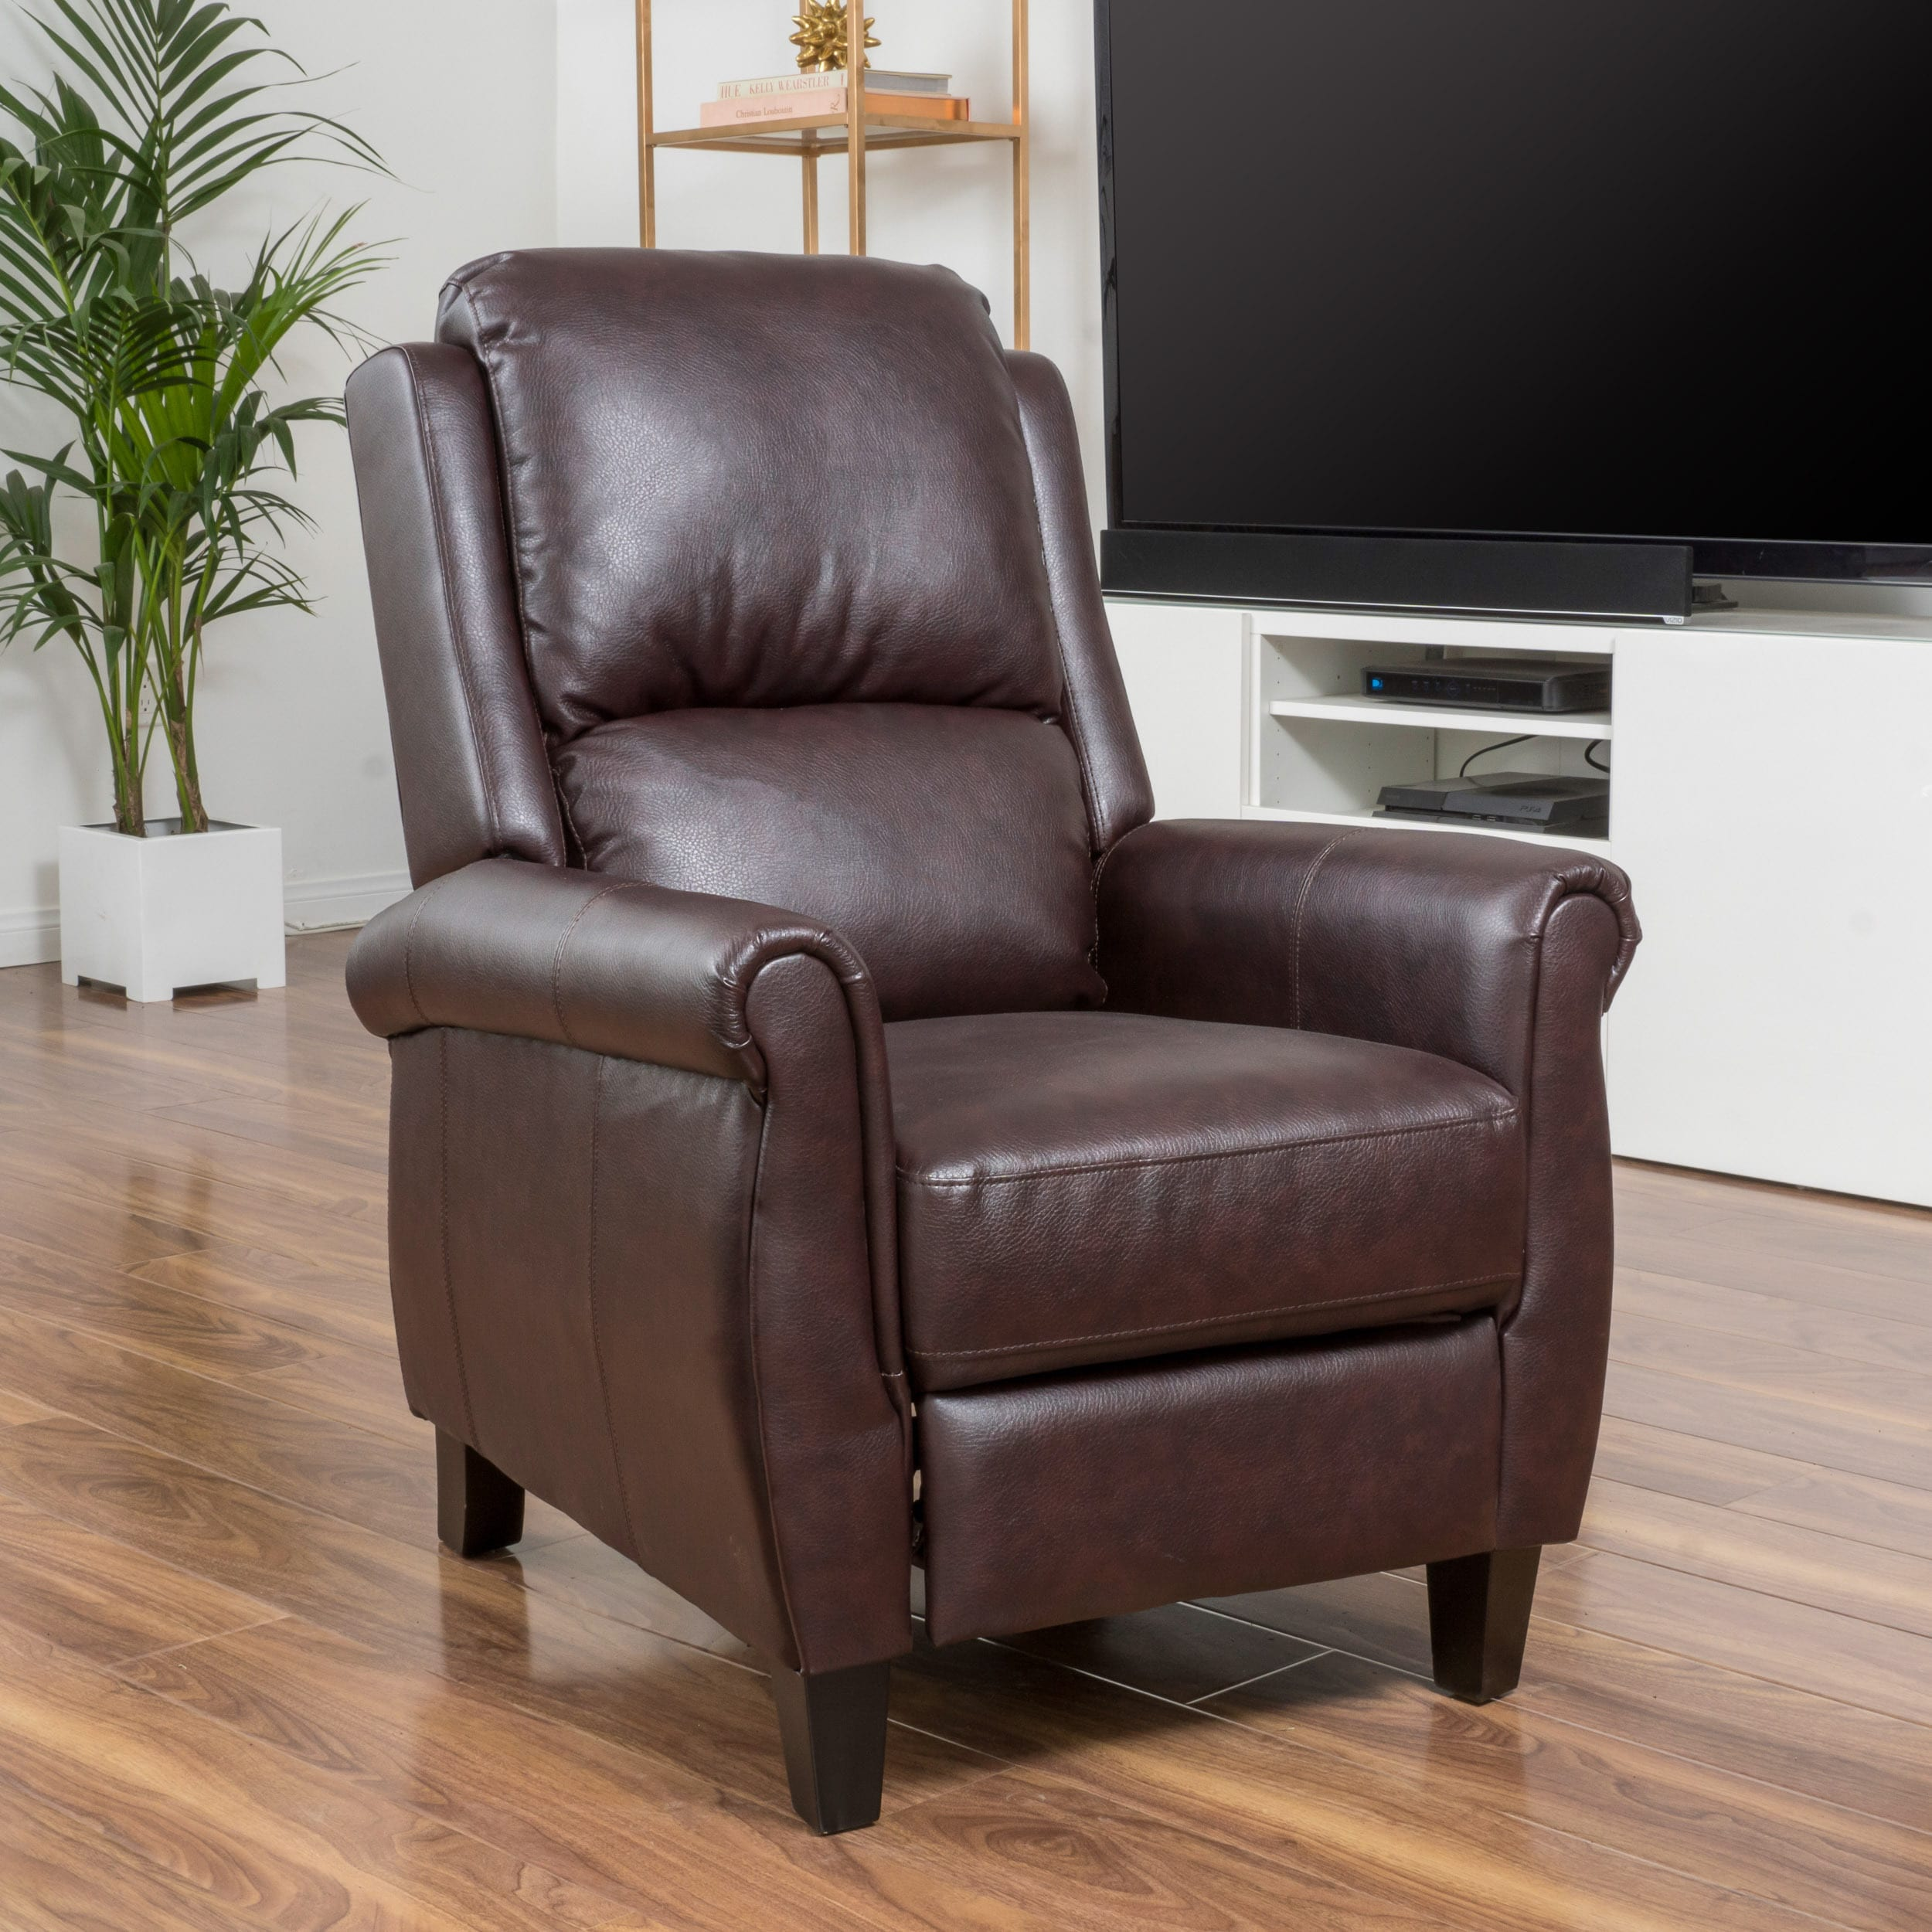 leather kane living furniture s power products genesis jade room recliner recliners